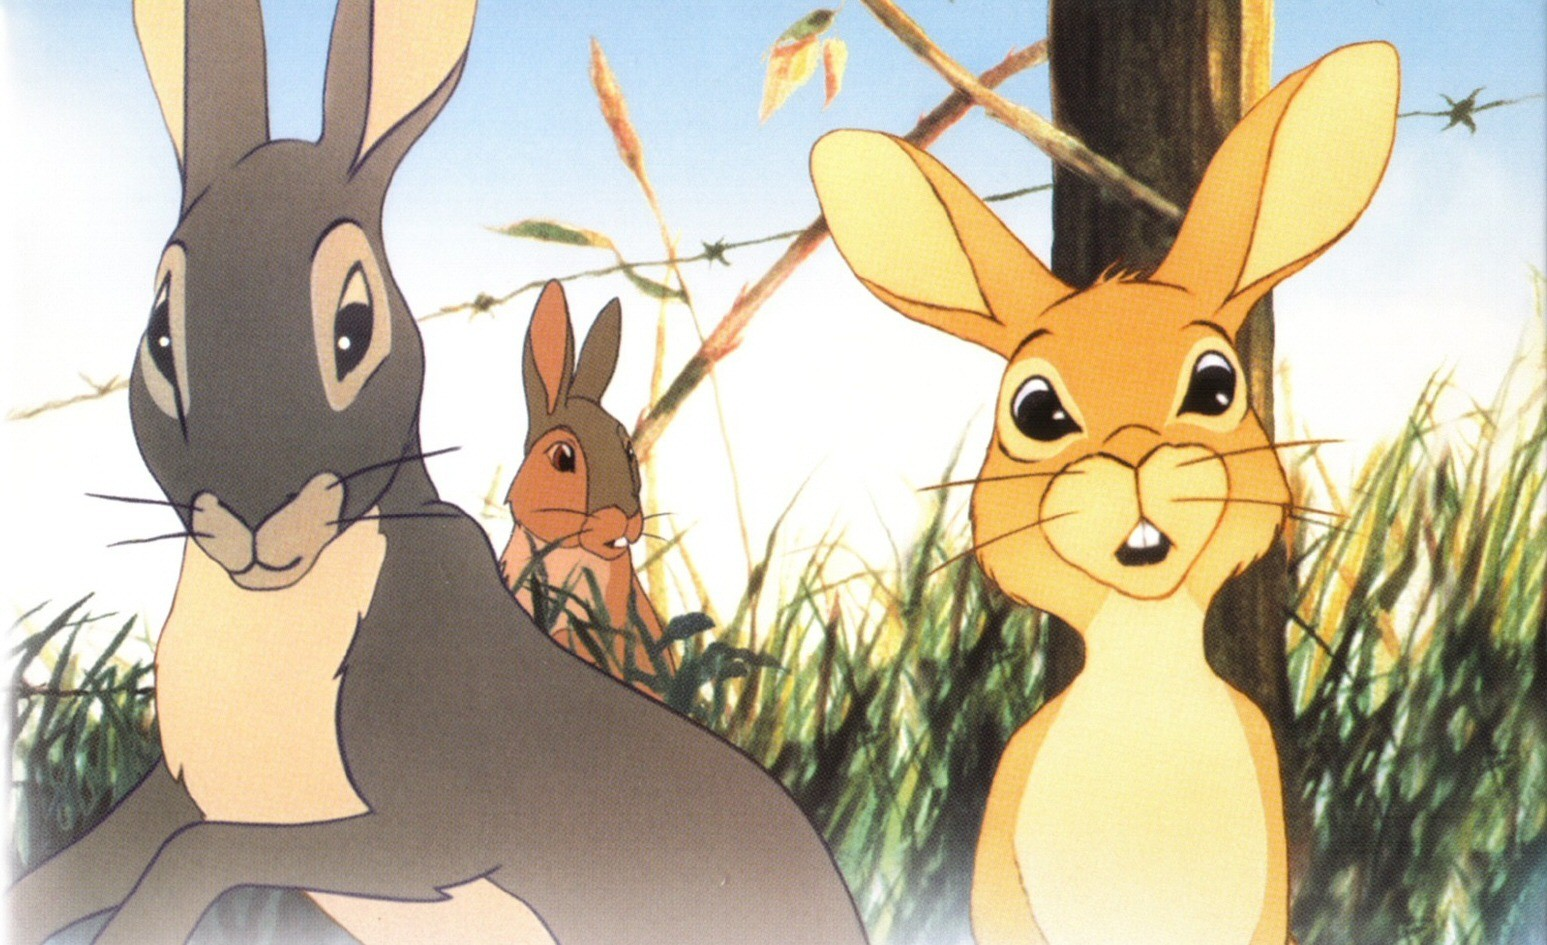 Political Anime Girl Wallpaper 6 Watership Down Hd Wallpapers Background Images